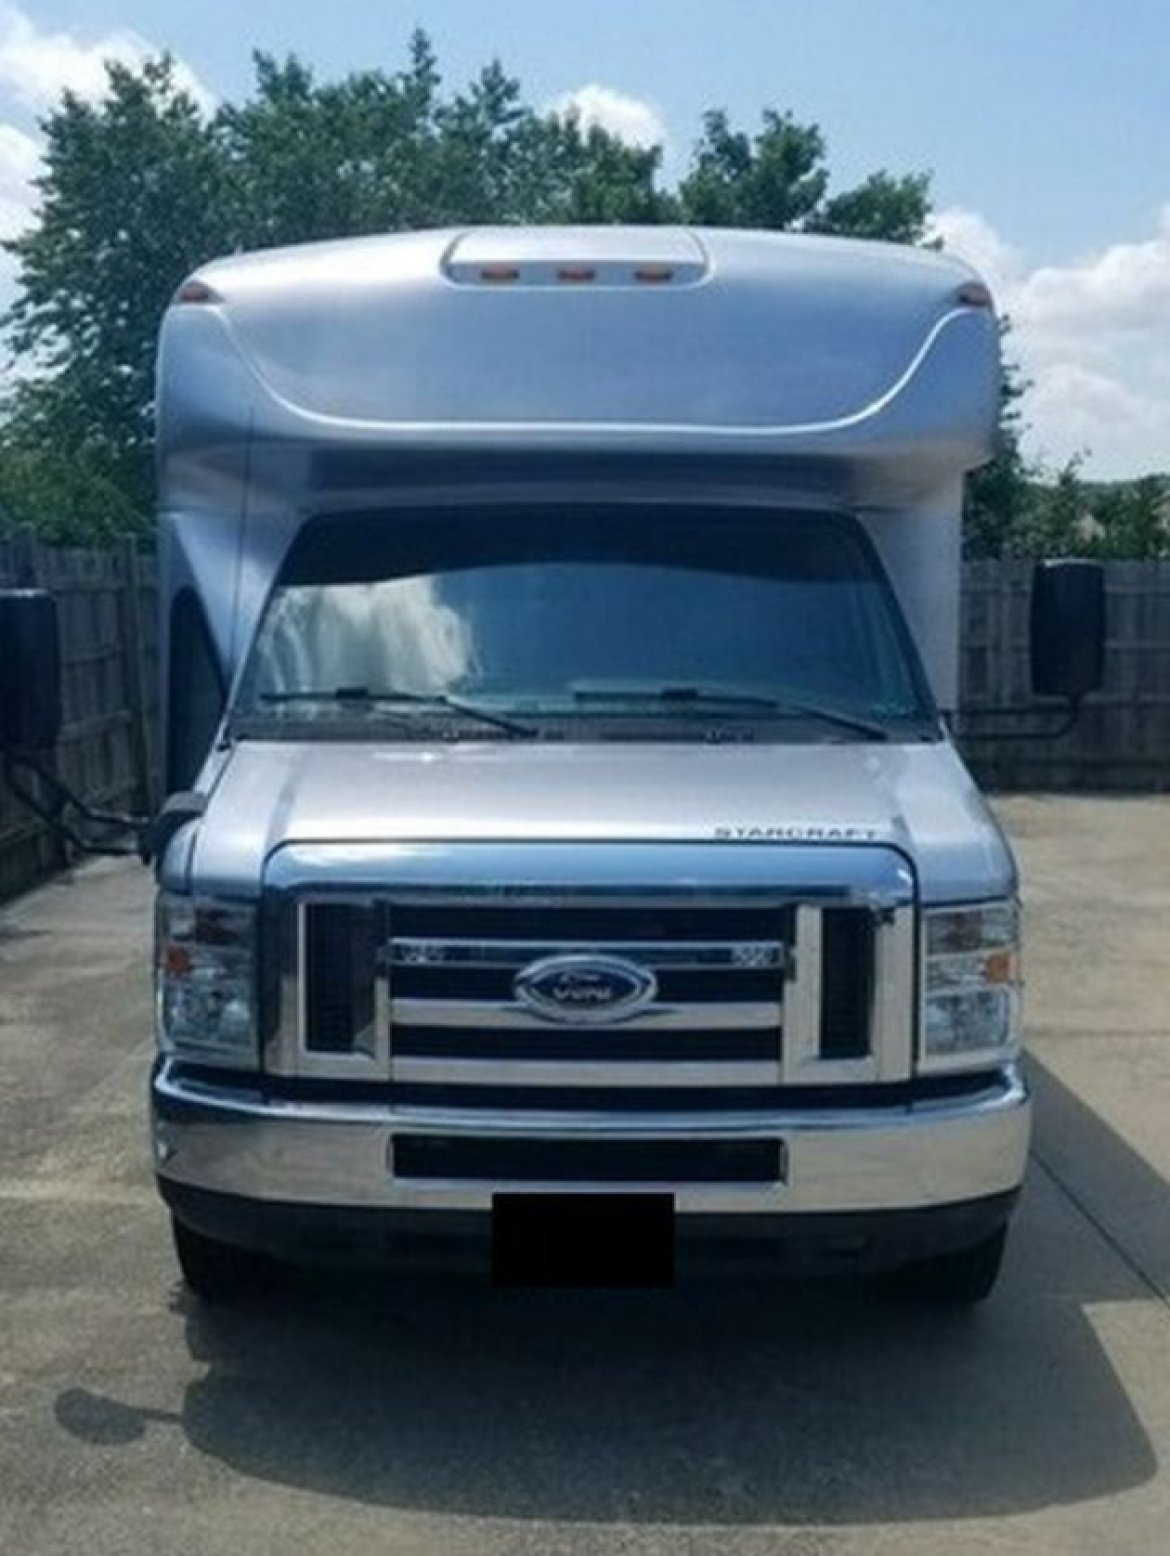 Executive Shuttle for sale: 2013 Ford E450 26-Passenger Executive Shuttle by Starcraft